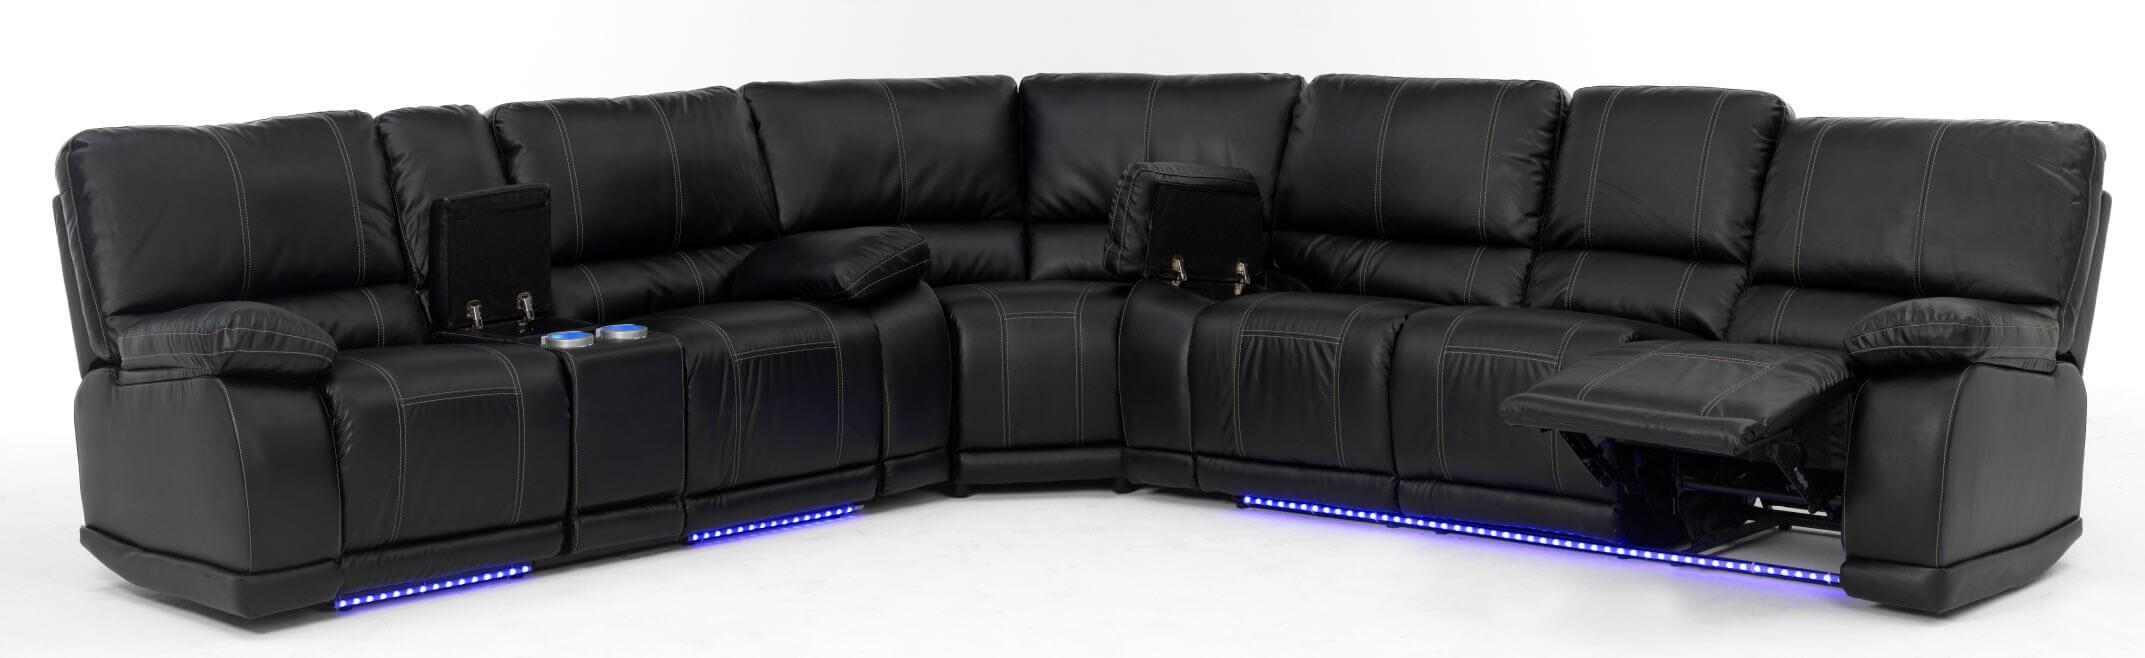 Electra Power Reclining Sectional With Led Lights Throughout Sofas With Lights (Image 11 of 21)